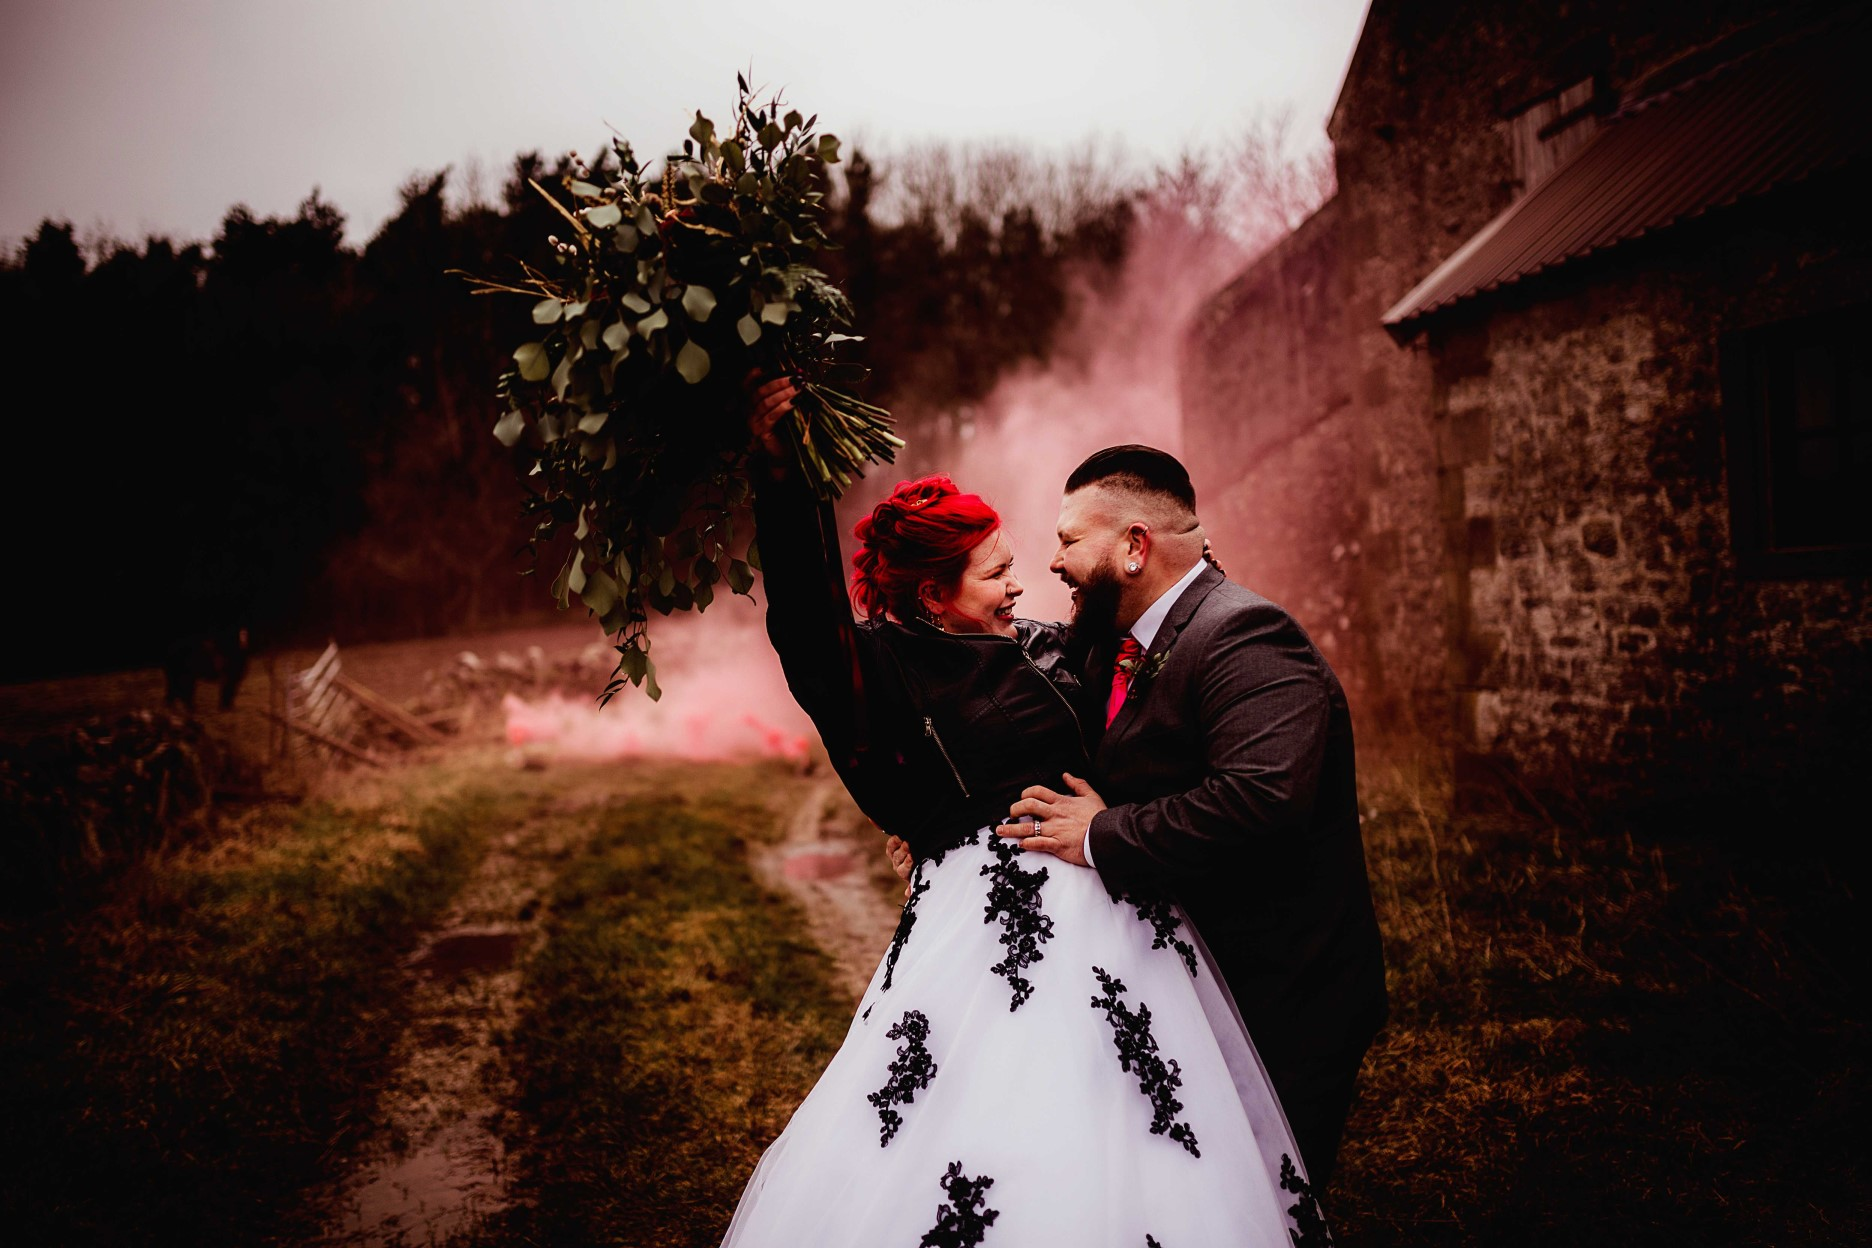 Gothic Wedding Ideas- Gothic Fairytale Wedding- Unconventional Wedding- Wedding Smokebomb